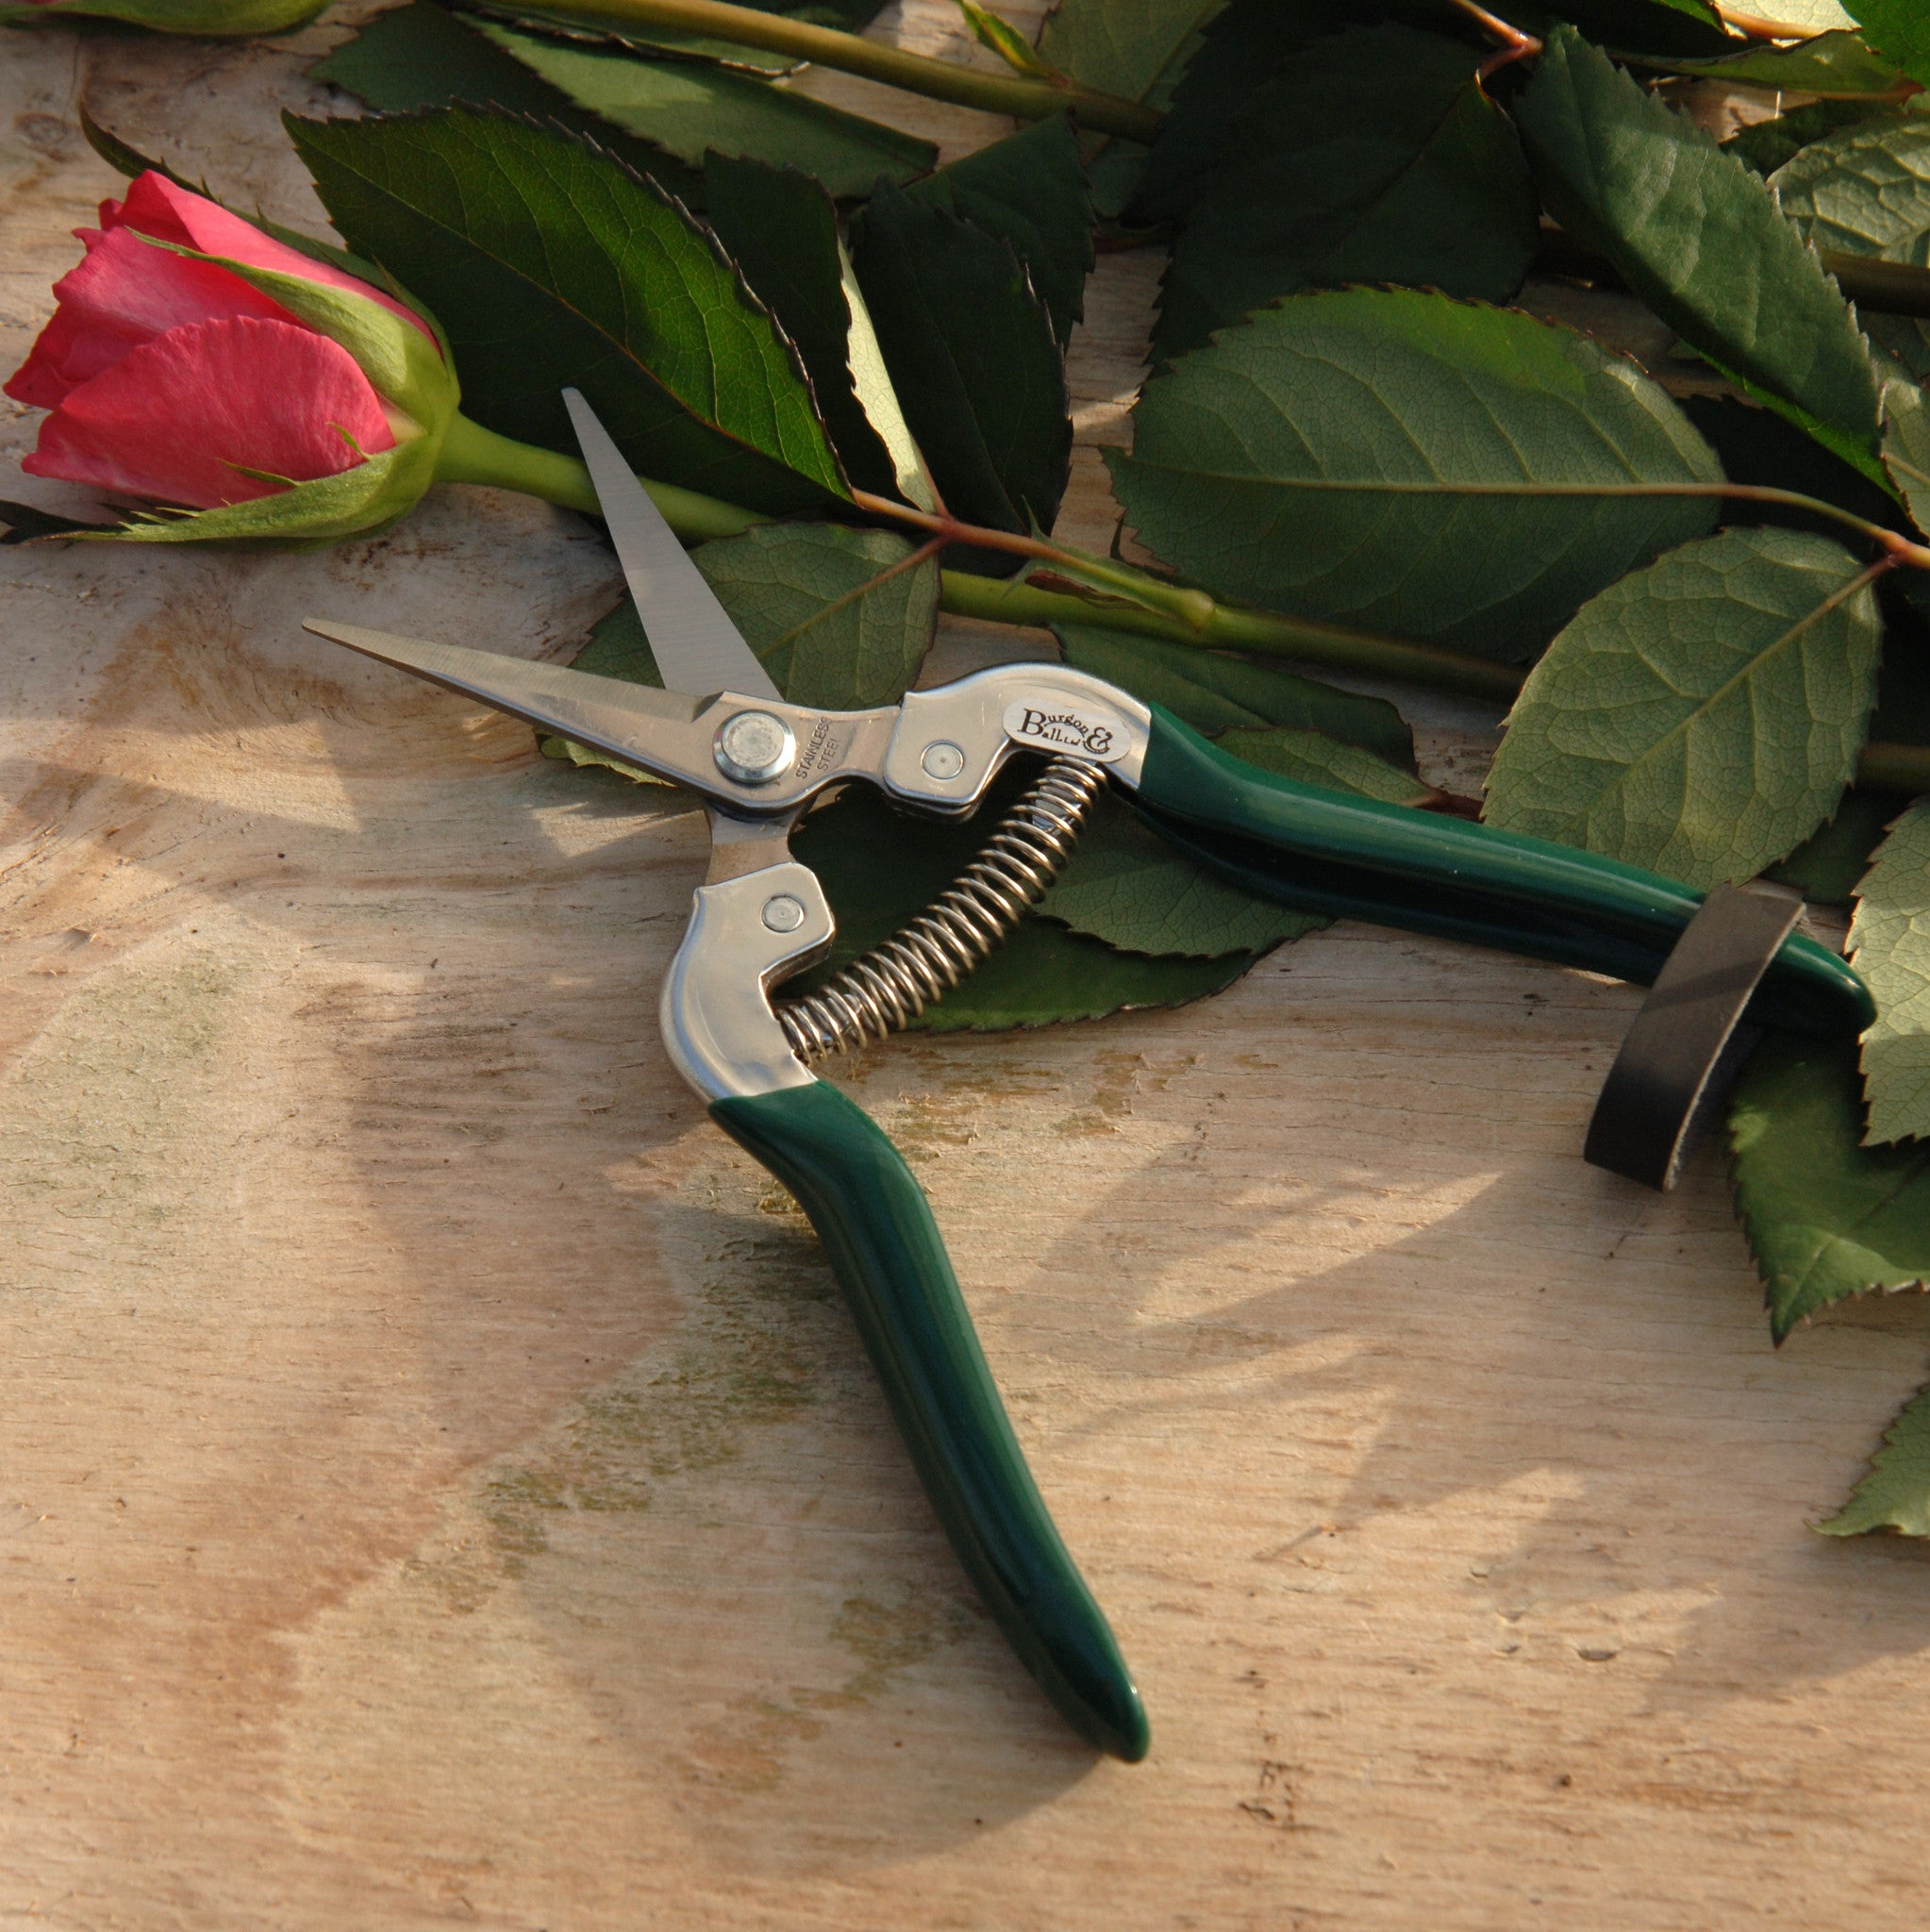 Flower & Fruit Snip - RHS Endorsed - The Potting Shed Garden Tools